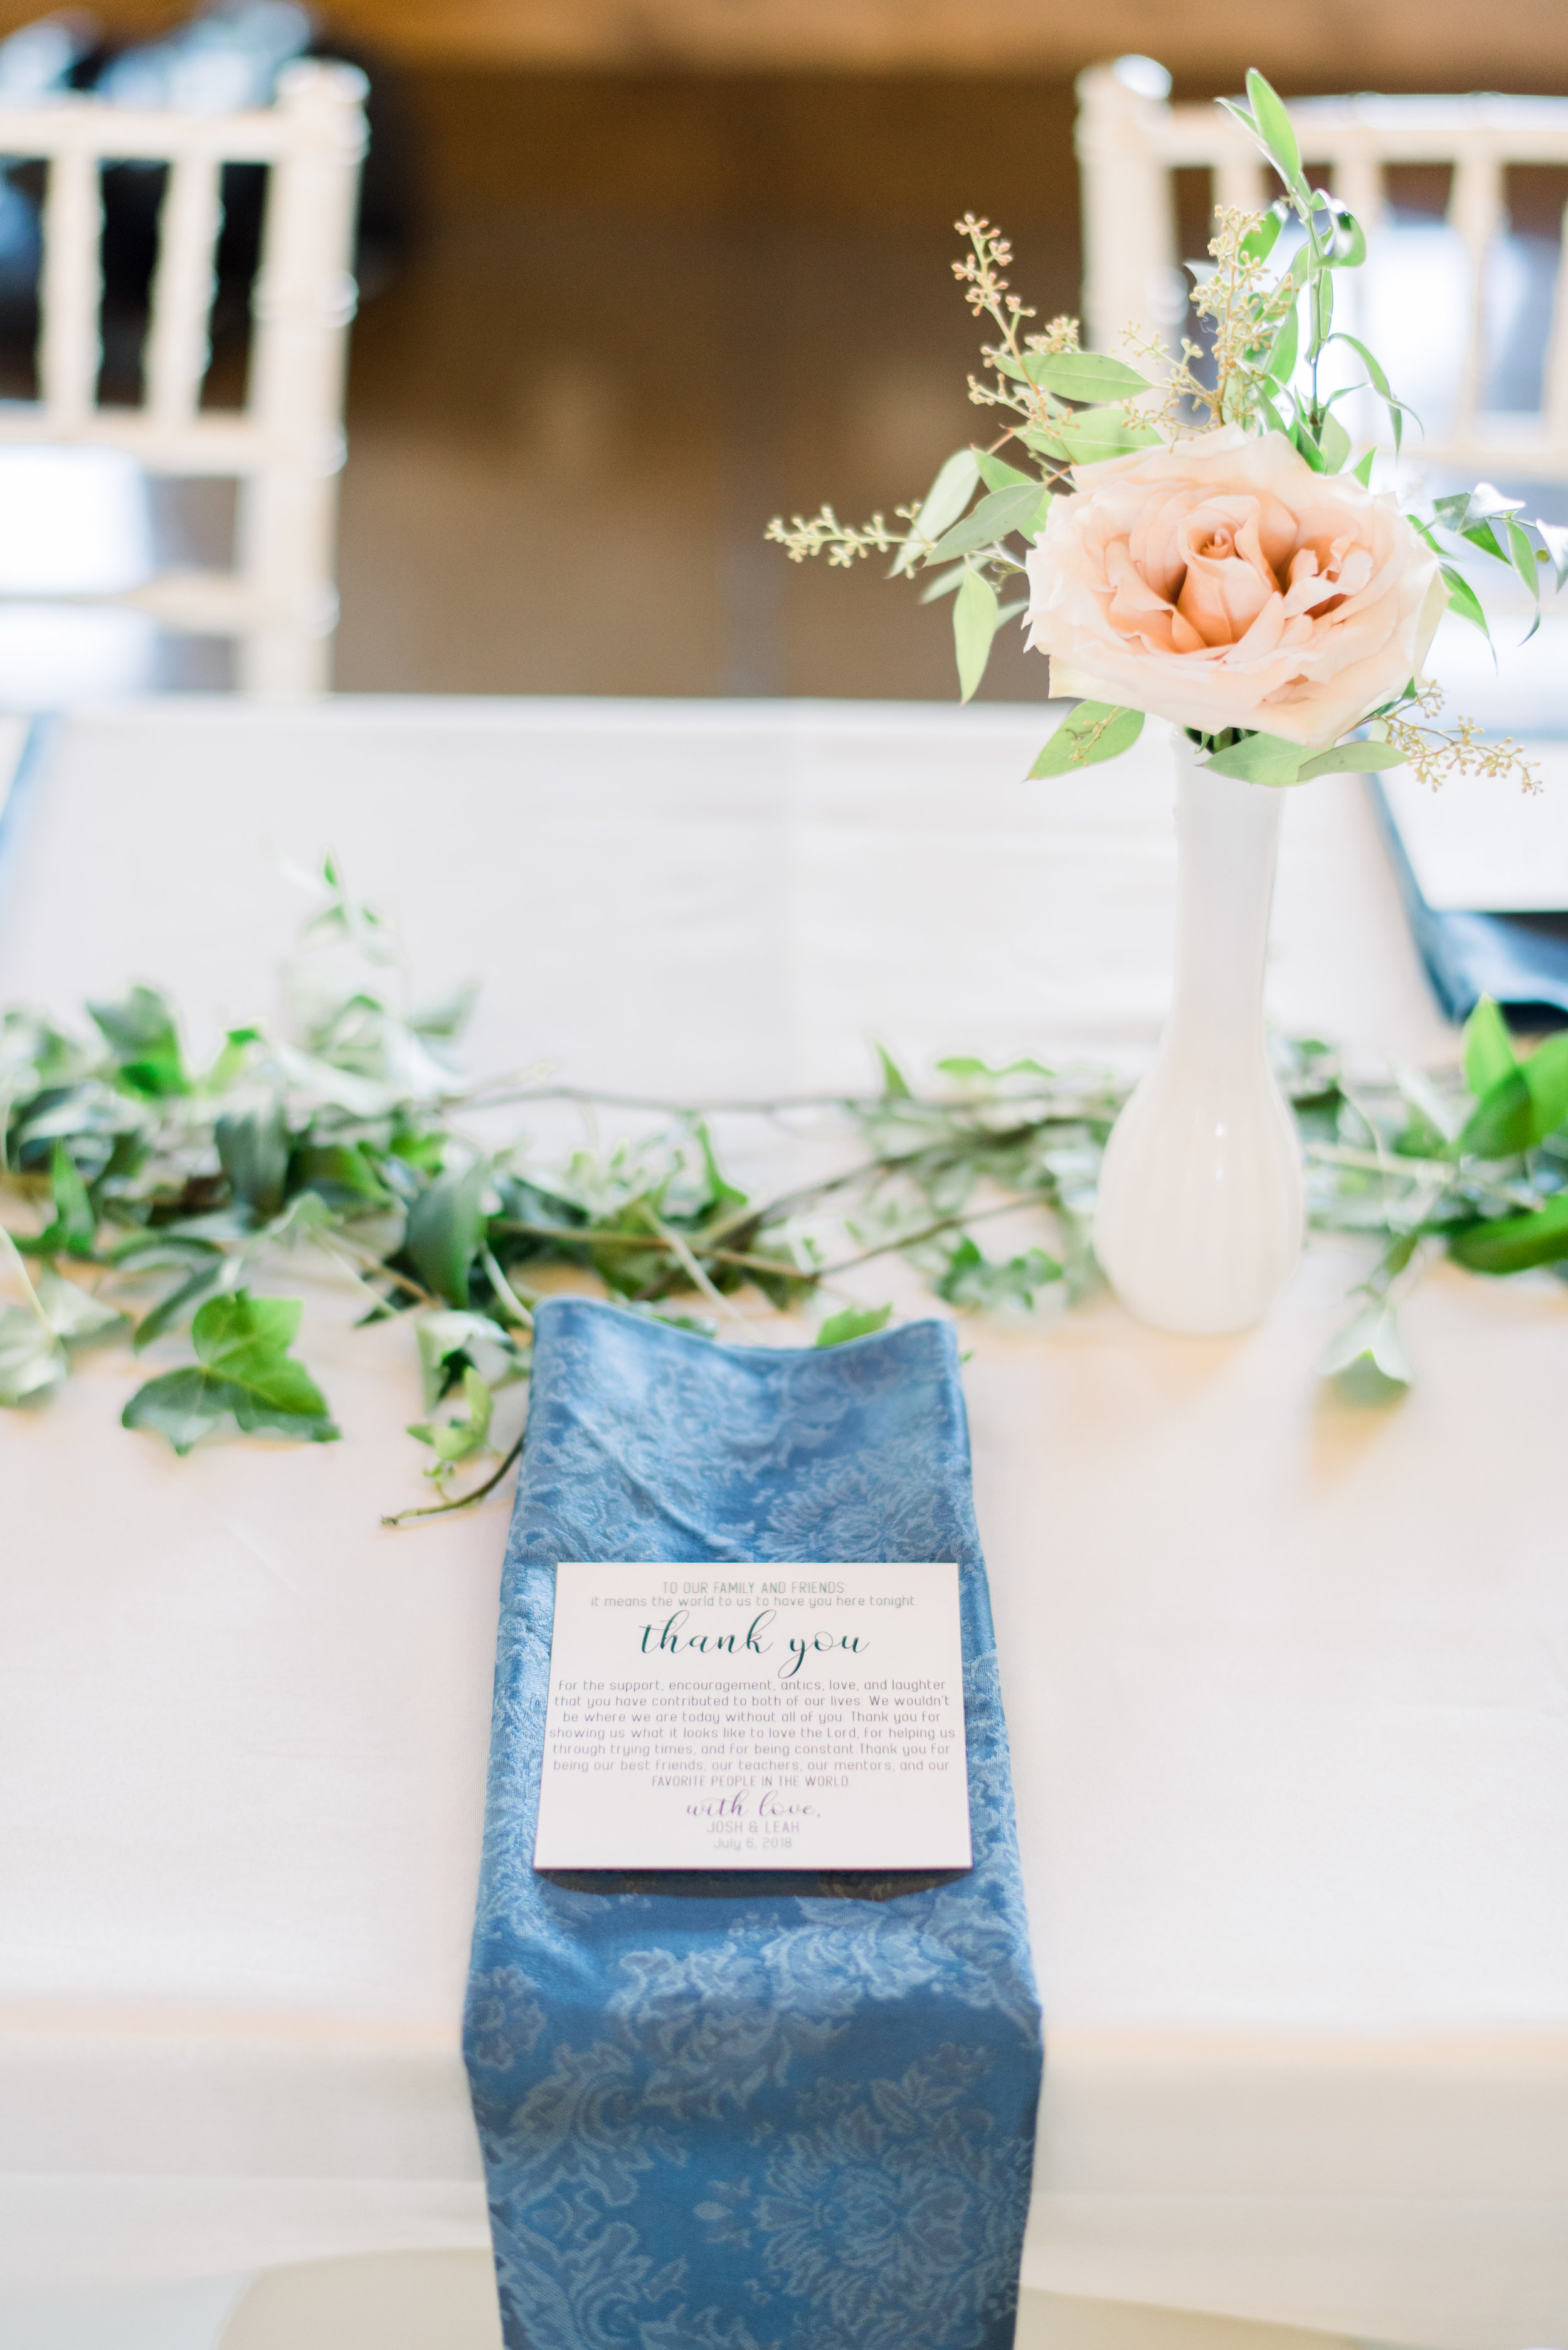 napkin place setting thank you card dusty blue wedding inspiration epoch co+ coordinators planners destination wedding